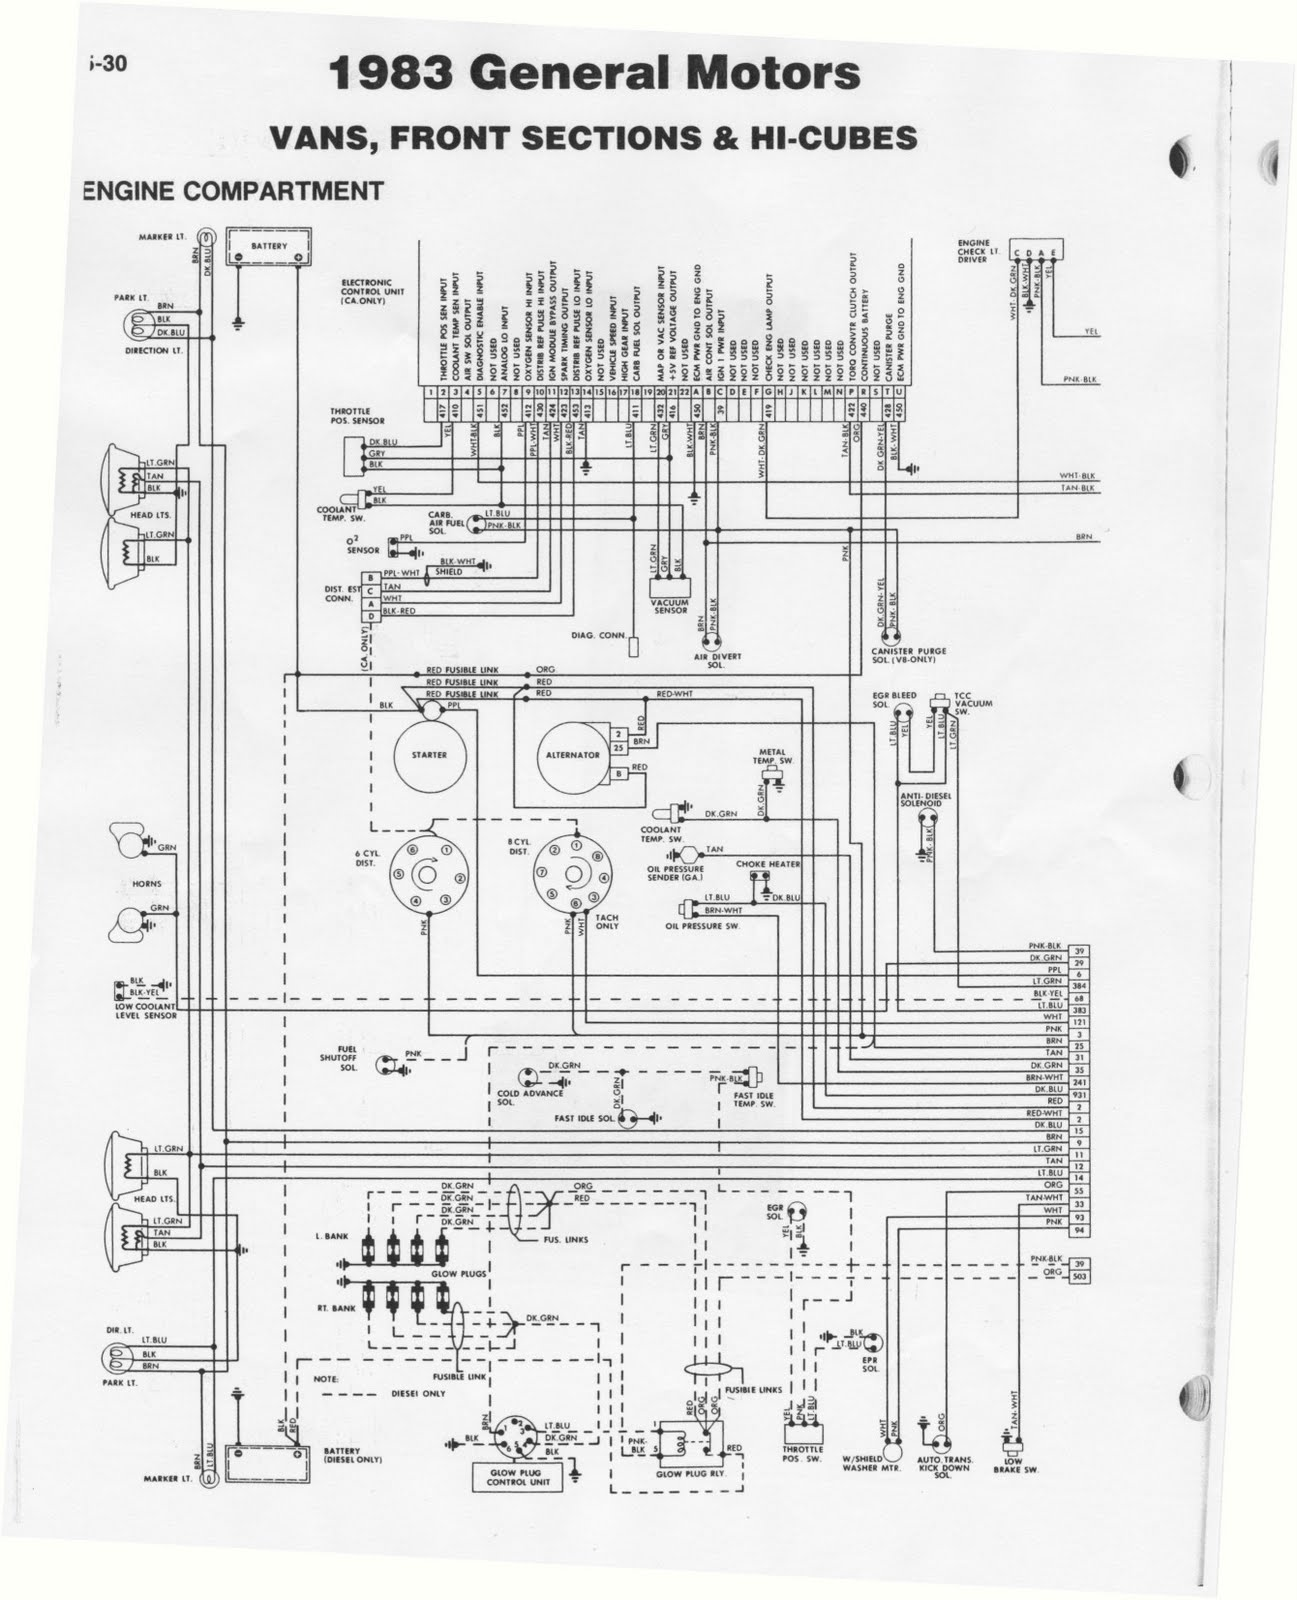 83+gm+forward+control+wiring+charts 001 1984 pace arrow wiring diagram fleetwood rv wiring diagram \u2022 free fleetwood motorhome fuse diagrams at aneh.co